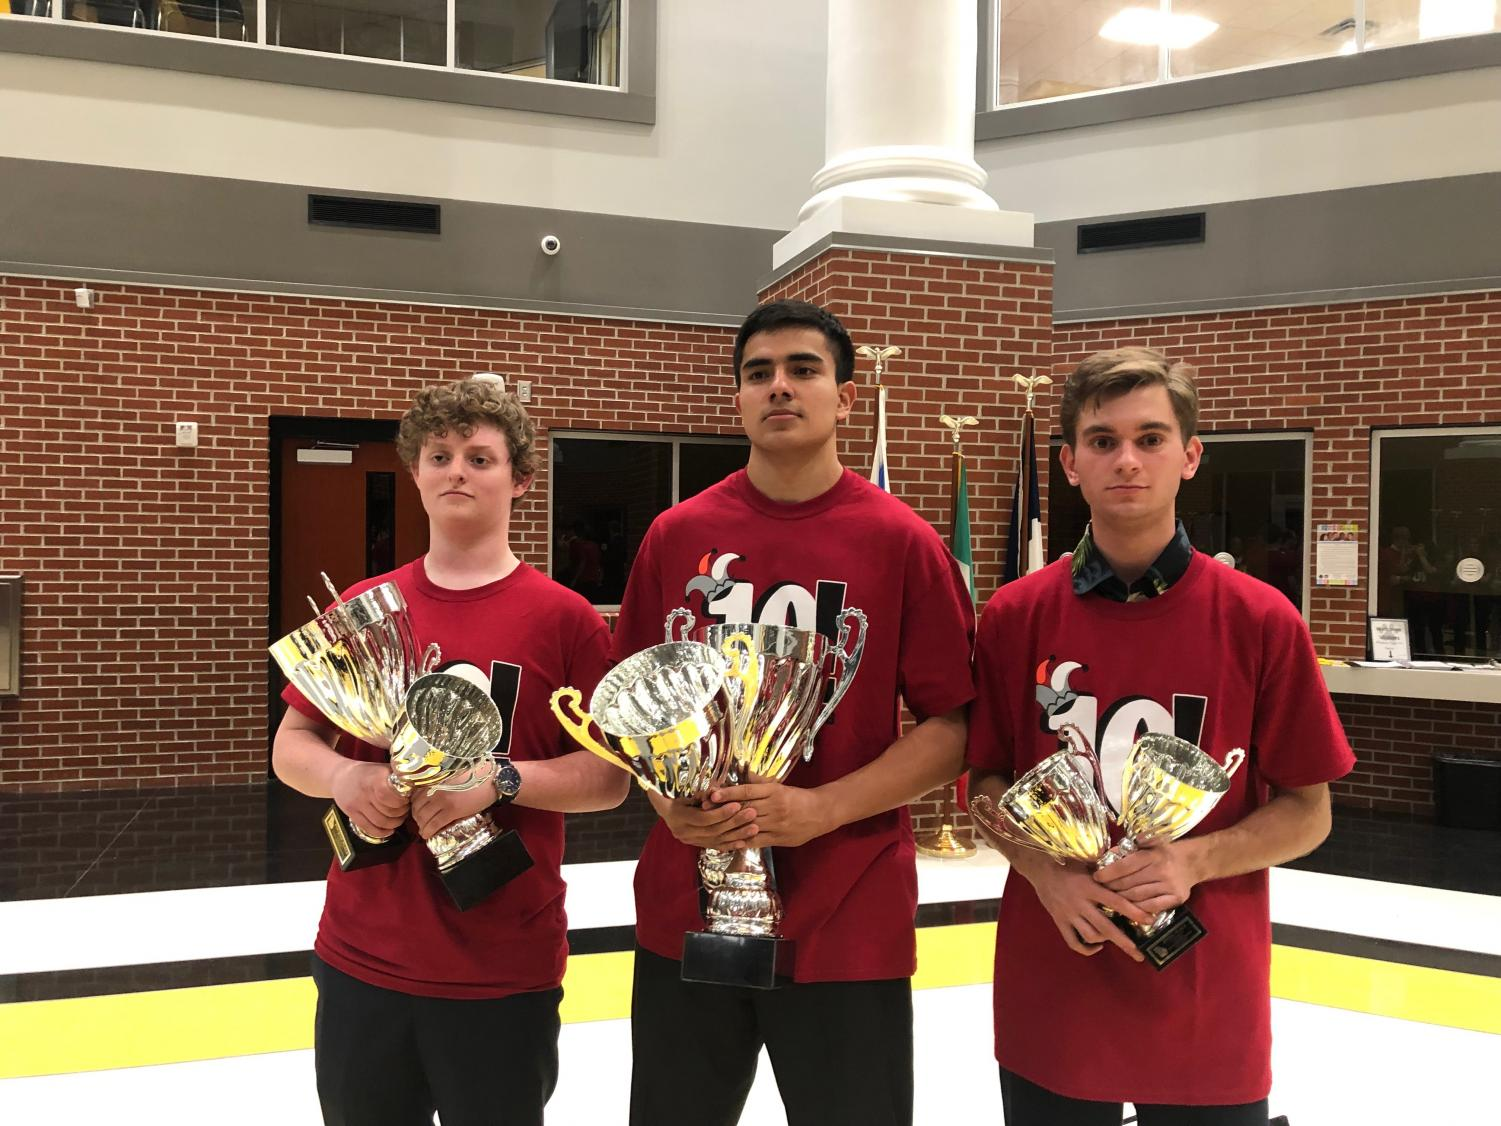 Seniors Harrison Gray, Franky Fernandez and Eric Slovensky pose with serious faces and trophies in hand at the State competition in Valdosta, GA.